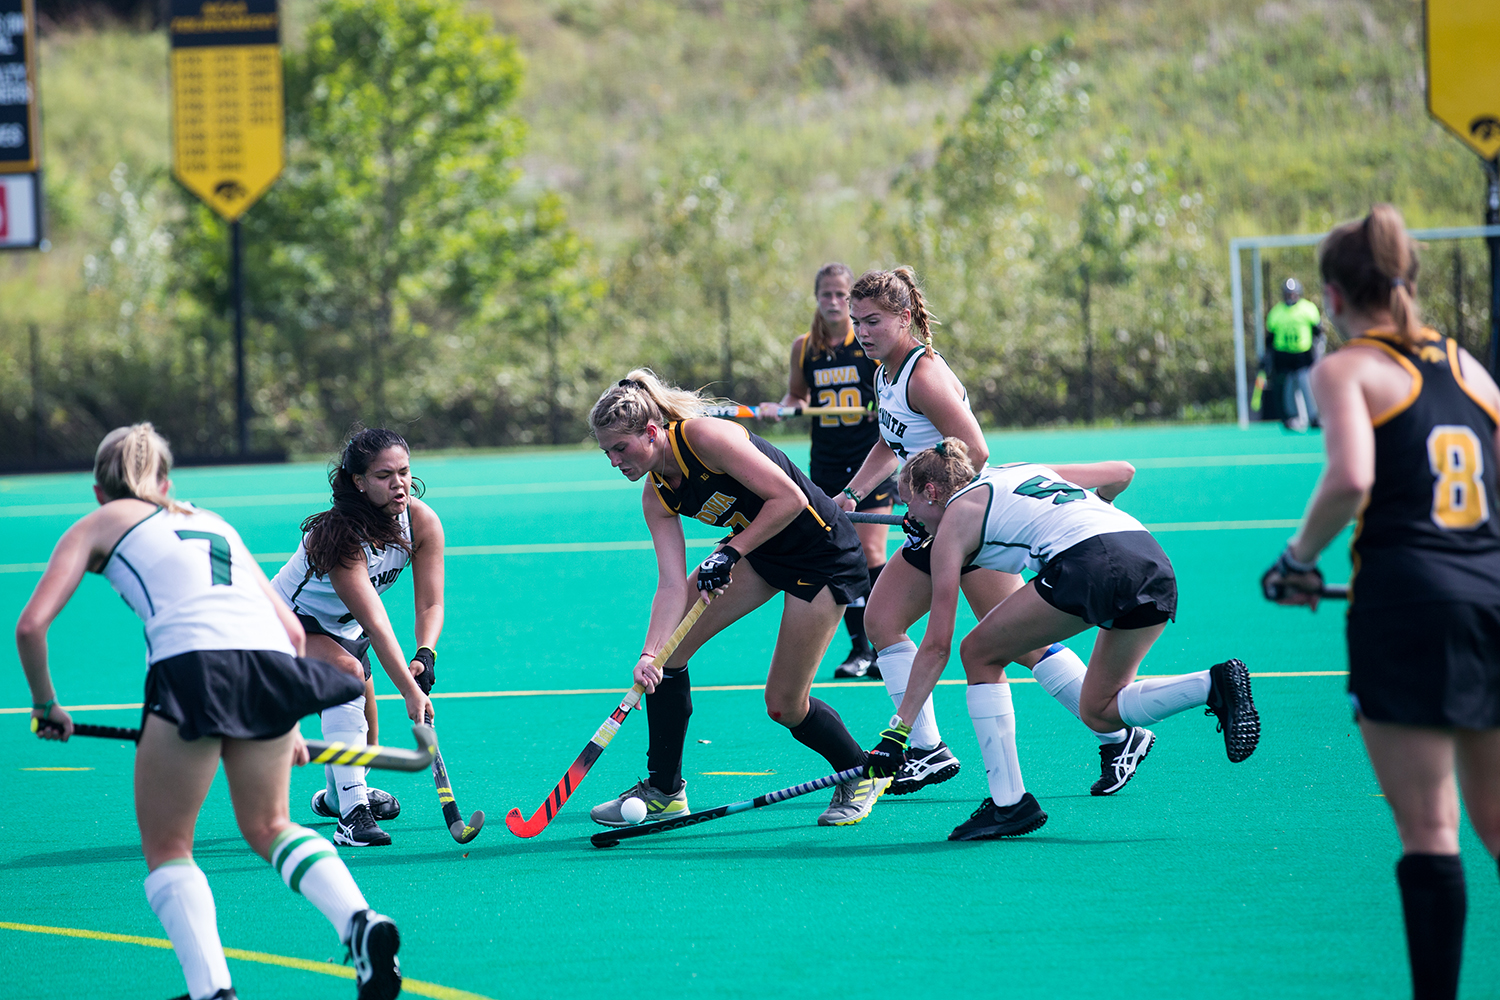 Iowa%27s+Ellie+Holley+navigates+through+the+defense+during+a+field+hockey+match+between+Iowa+and+Dartmouth+College+at+Grant+Field+on+Friday%2C+August+31%2C+2018.+The+Hawkeyes+shut+out+the+Big+Green%2C+6-0.